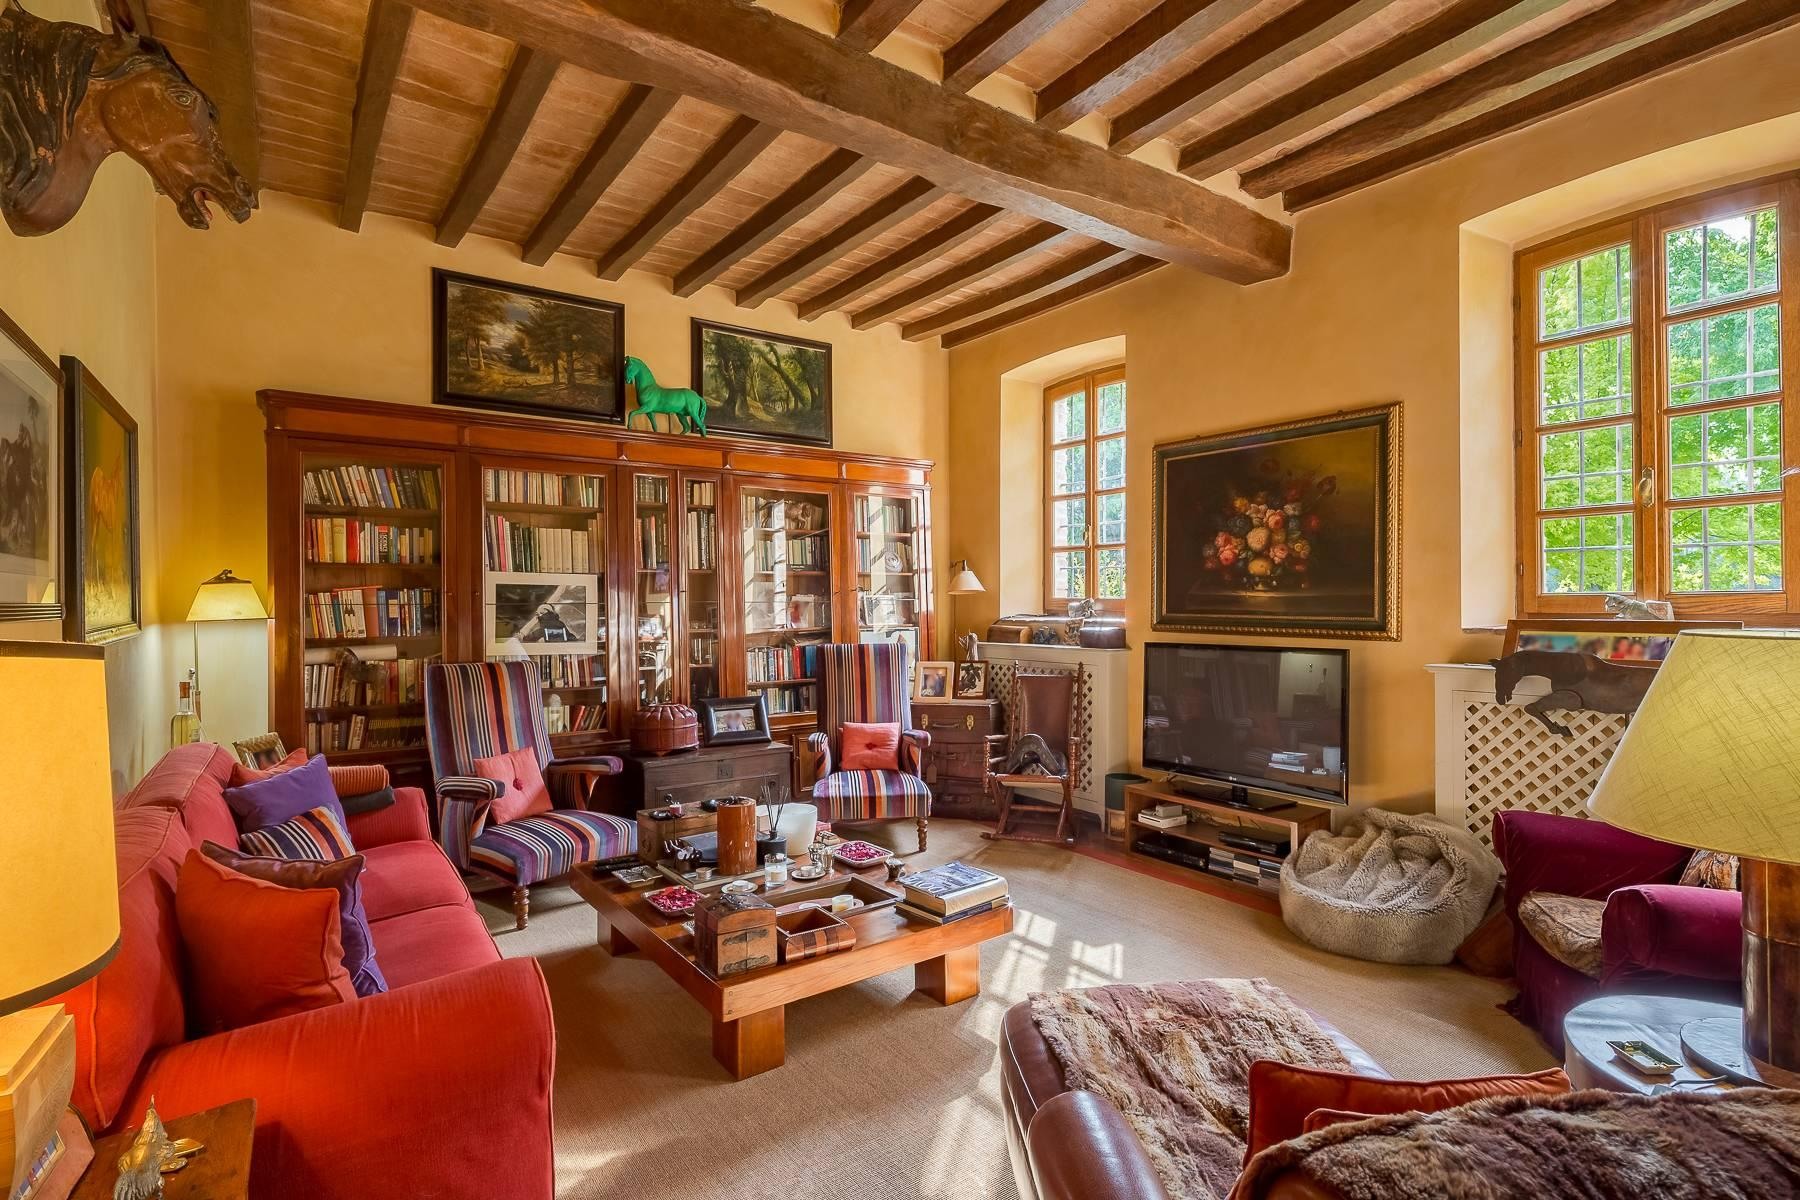 Ancient charming property on the hills of Piacenza - 32